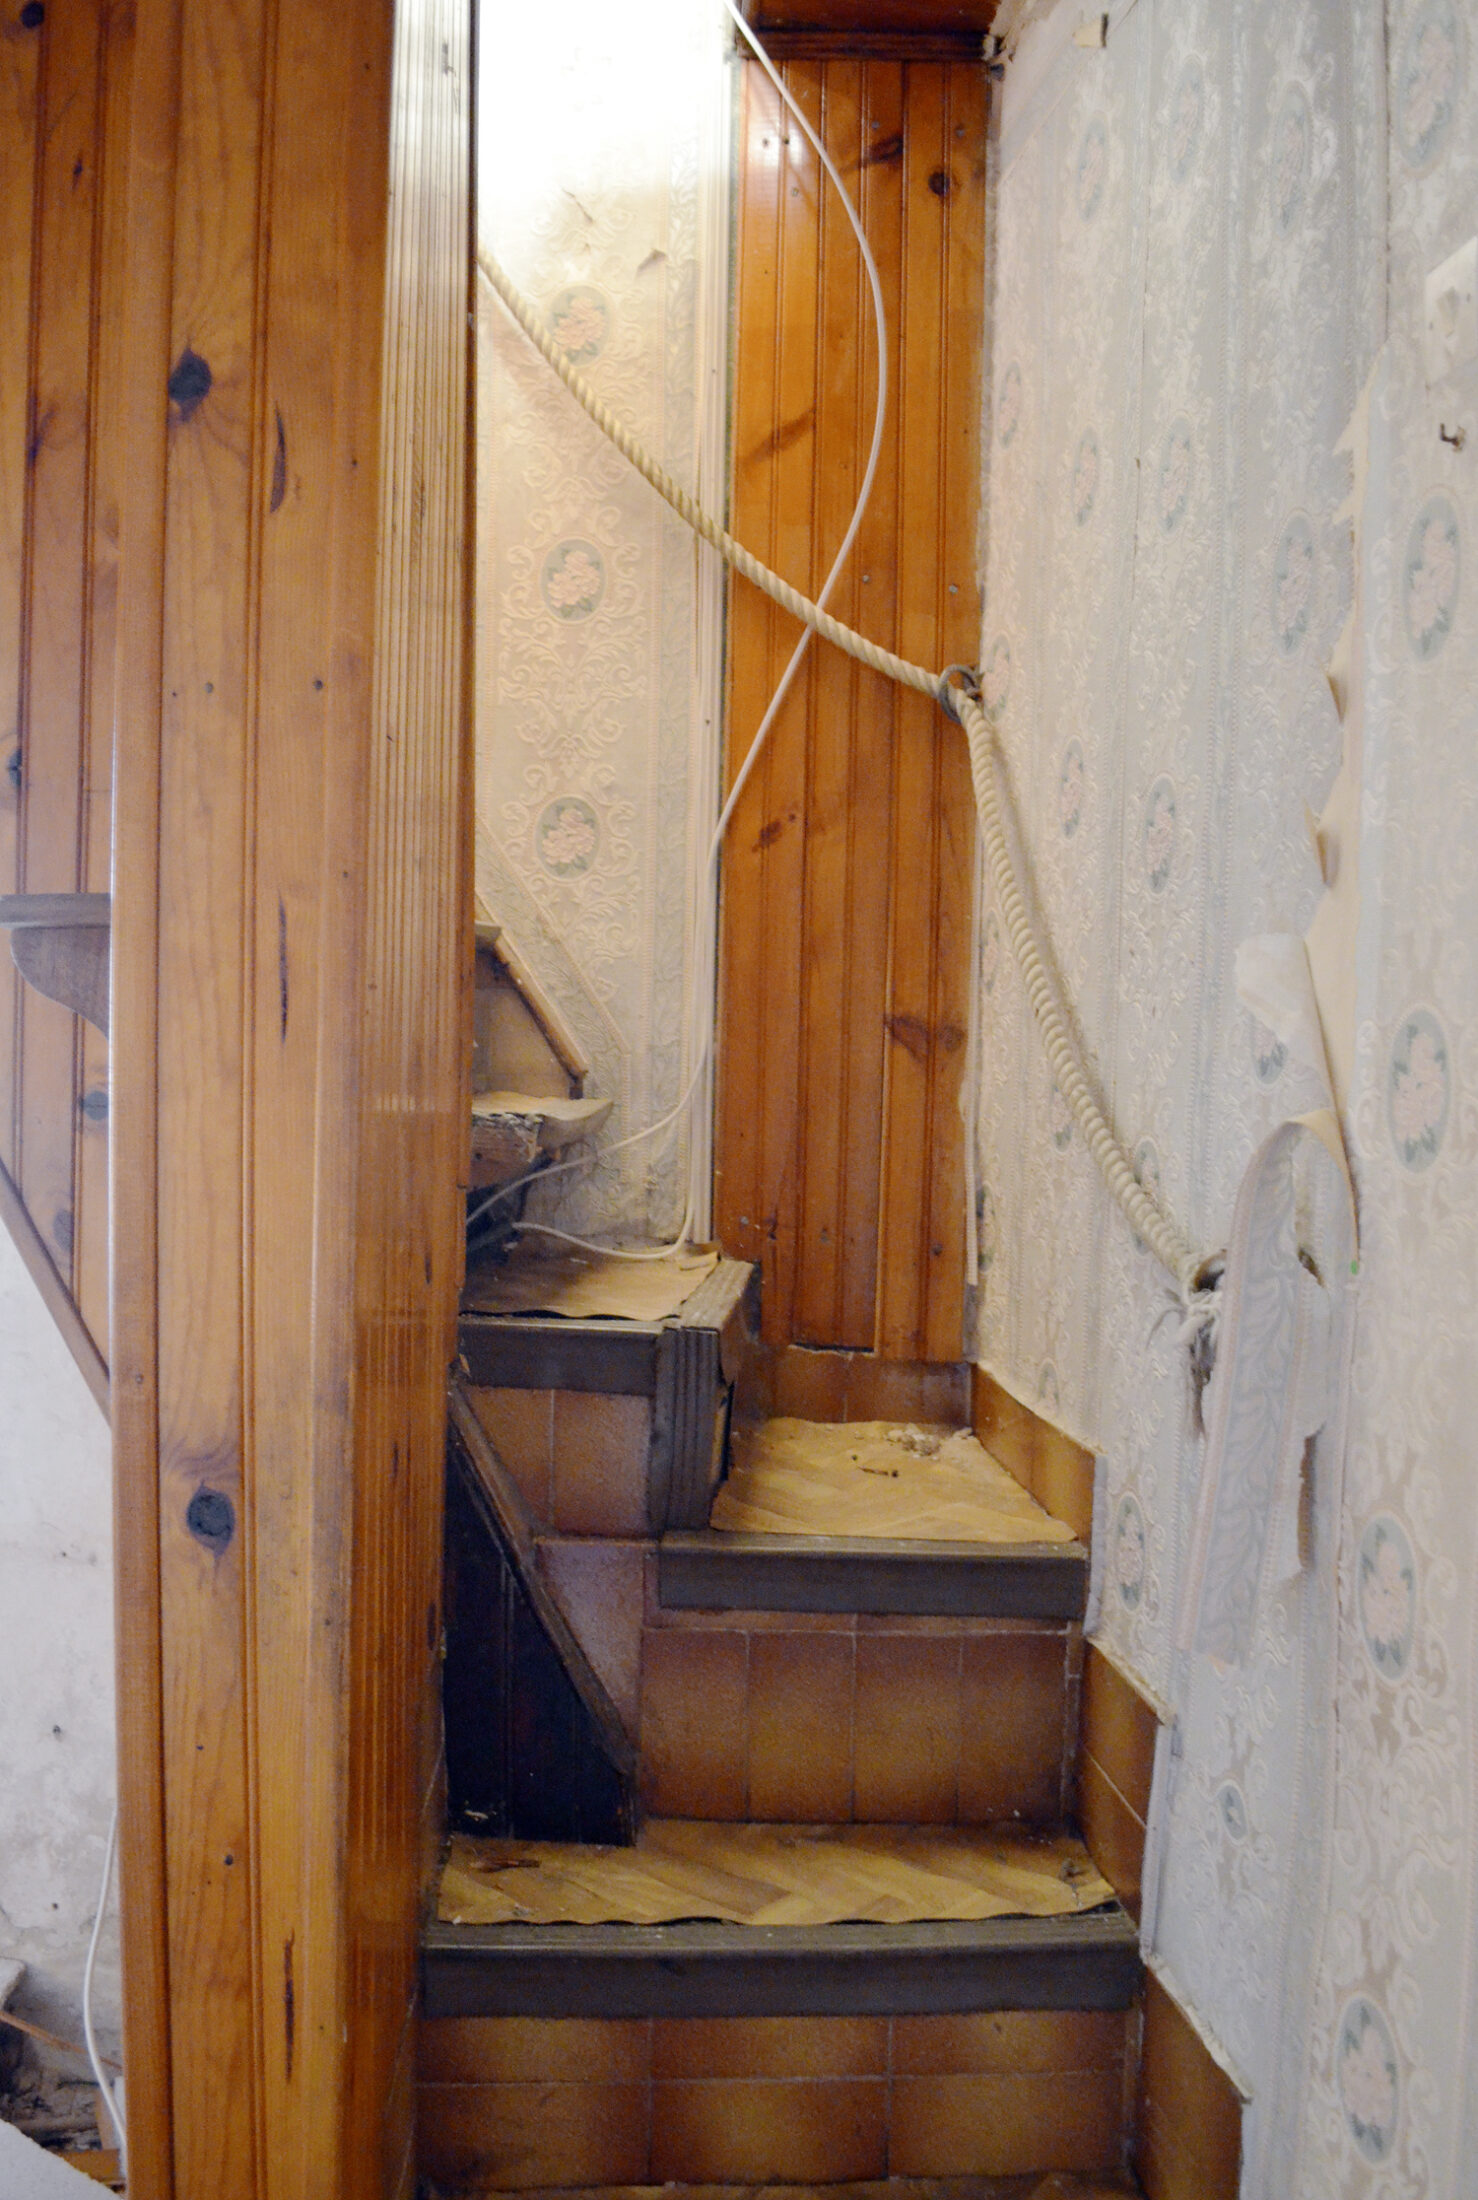 The Original Staircase. Renovation Provence